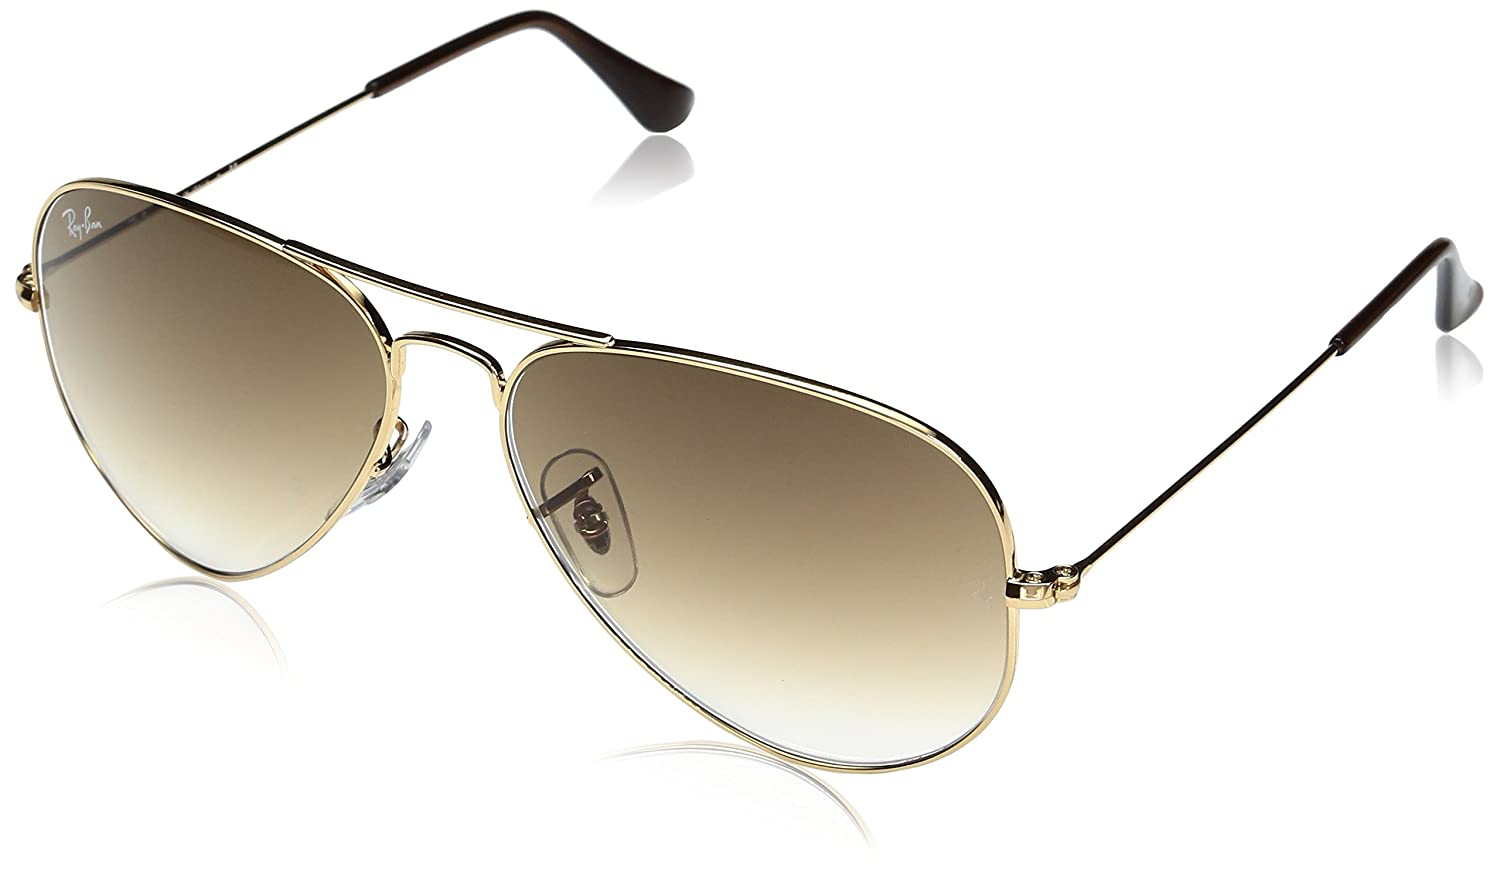 Amazon.com: Ray-Ban Sunglasses - RB3025 Aviator Large Metal / Frame: Gold  Lens: Crystal Brown Polarized (58mm): Clothing